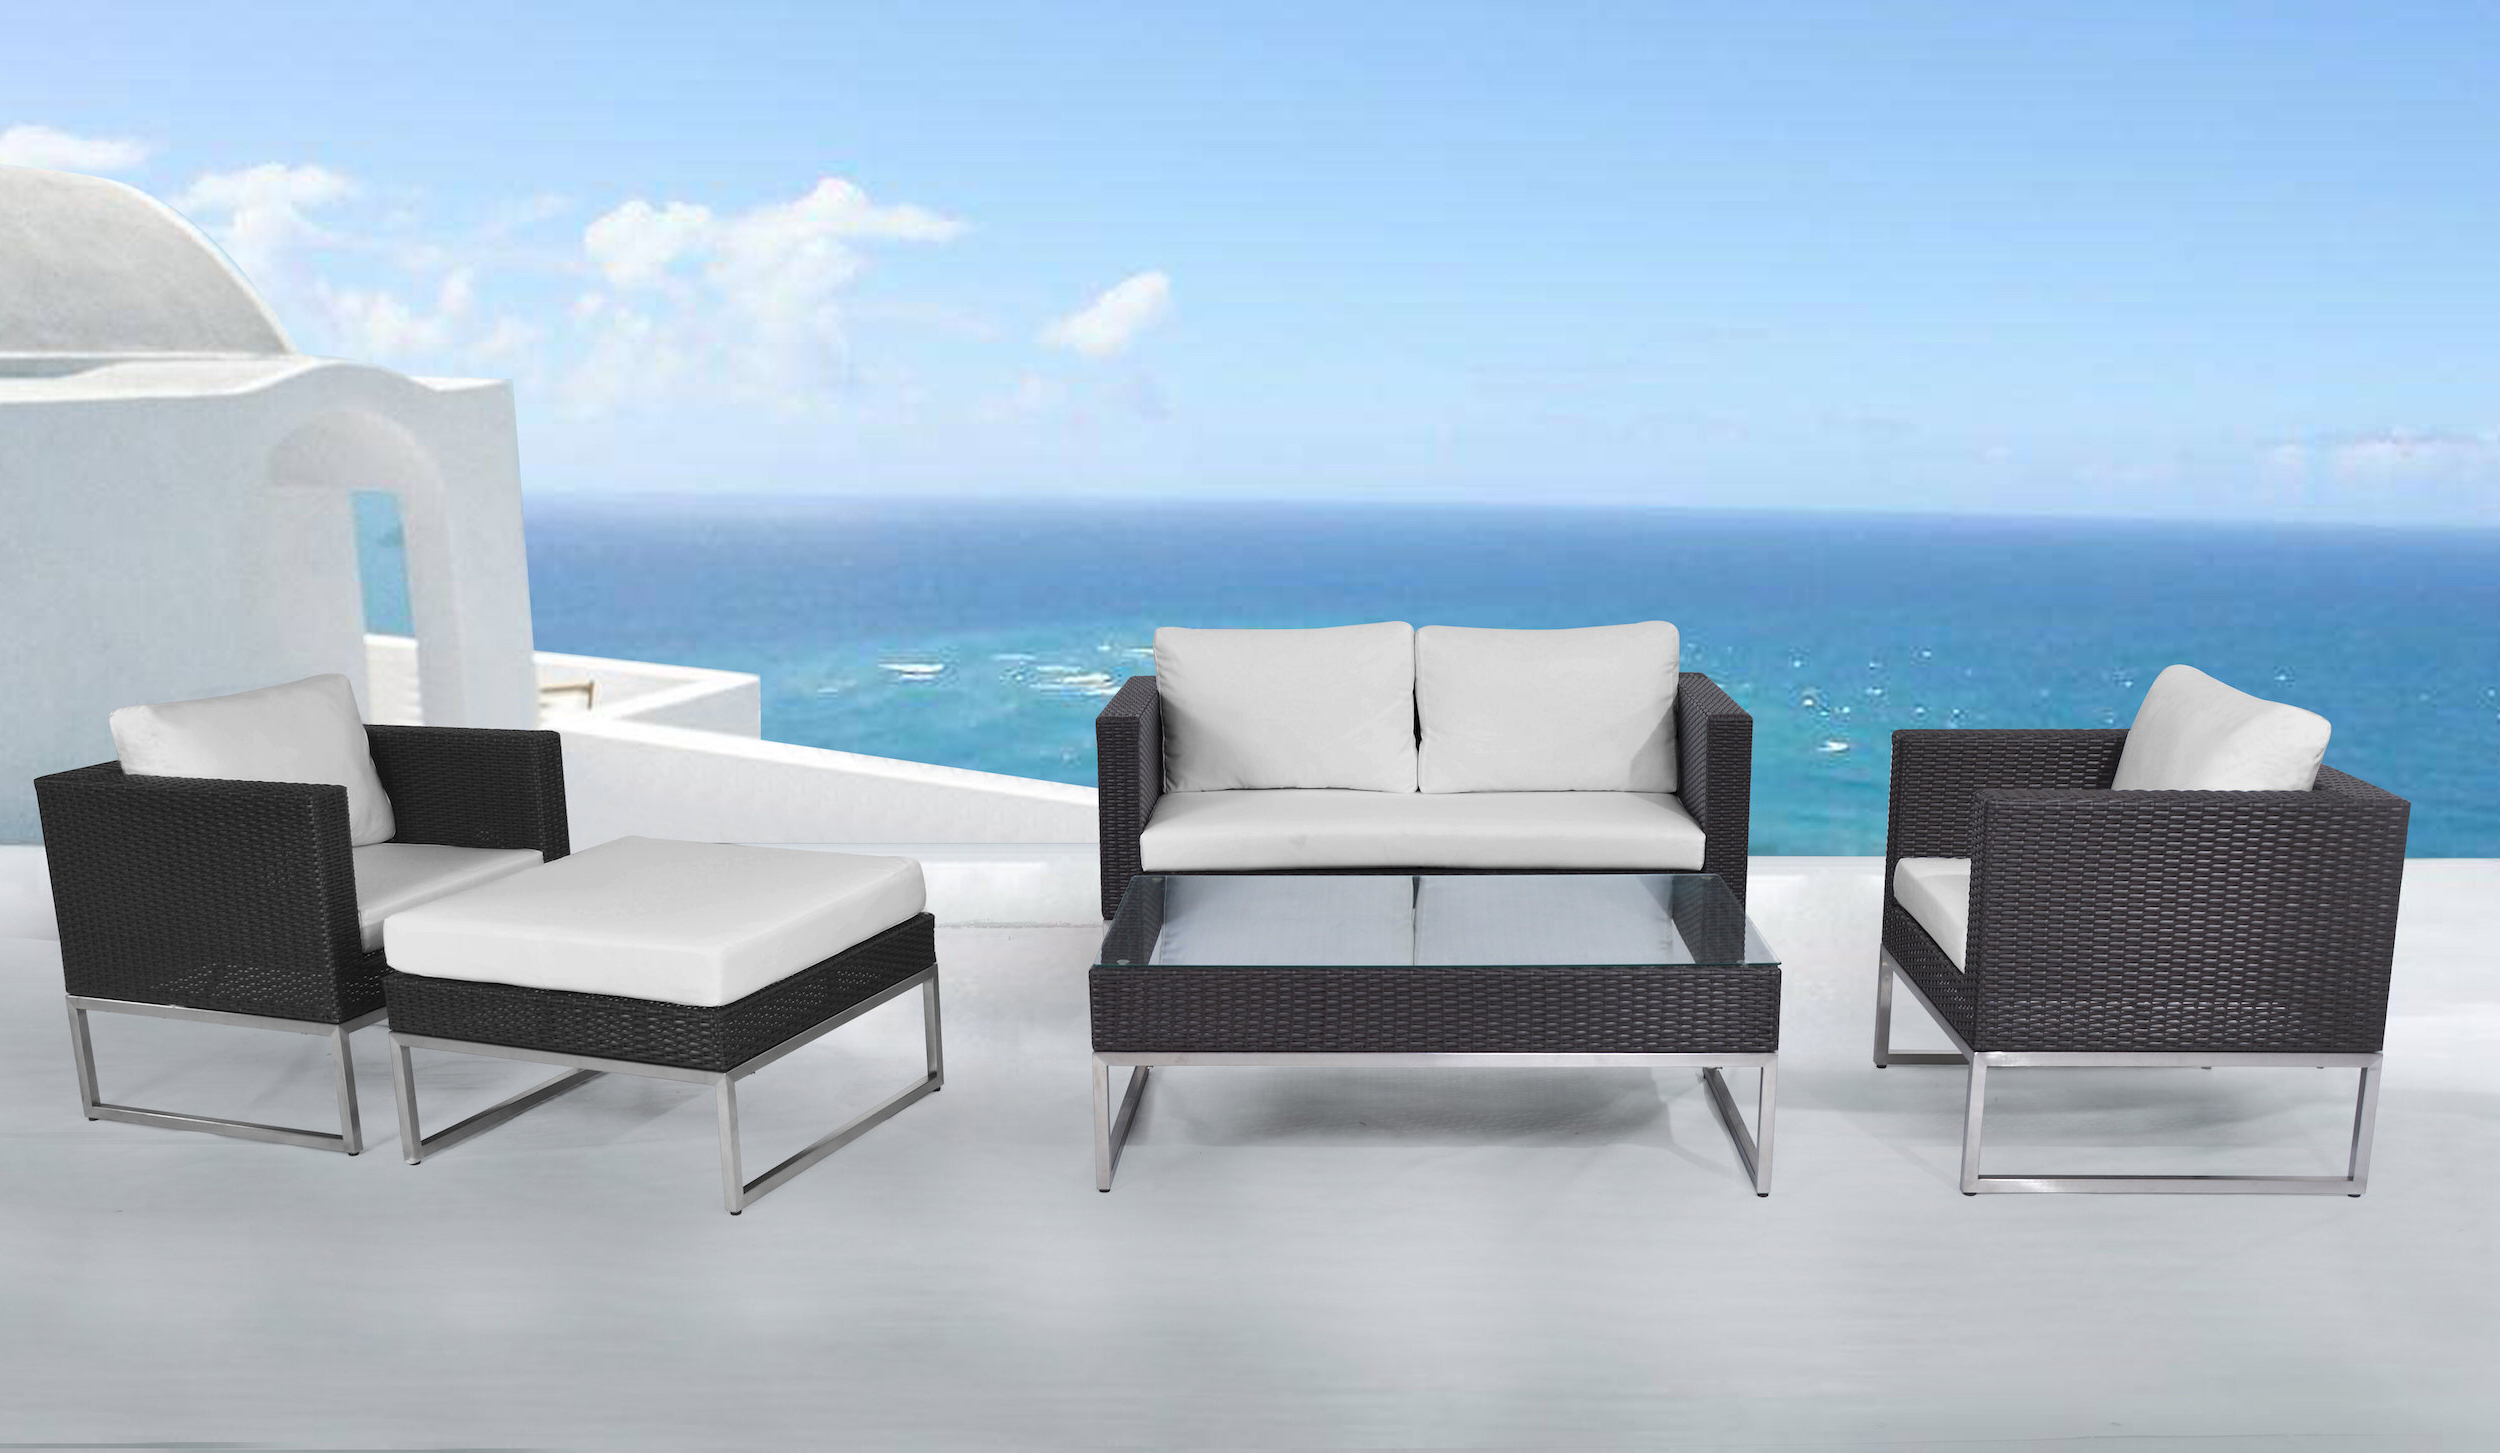 Preferred Jimmie 3 Piece Sectionals Seating Group With Cushions Intended For Kabir Garden 5 Piece Rattan Sofa Seating Group With Cushions (View 19 of 25)